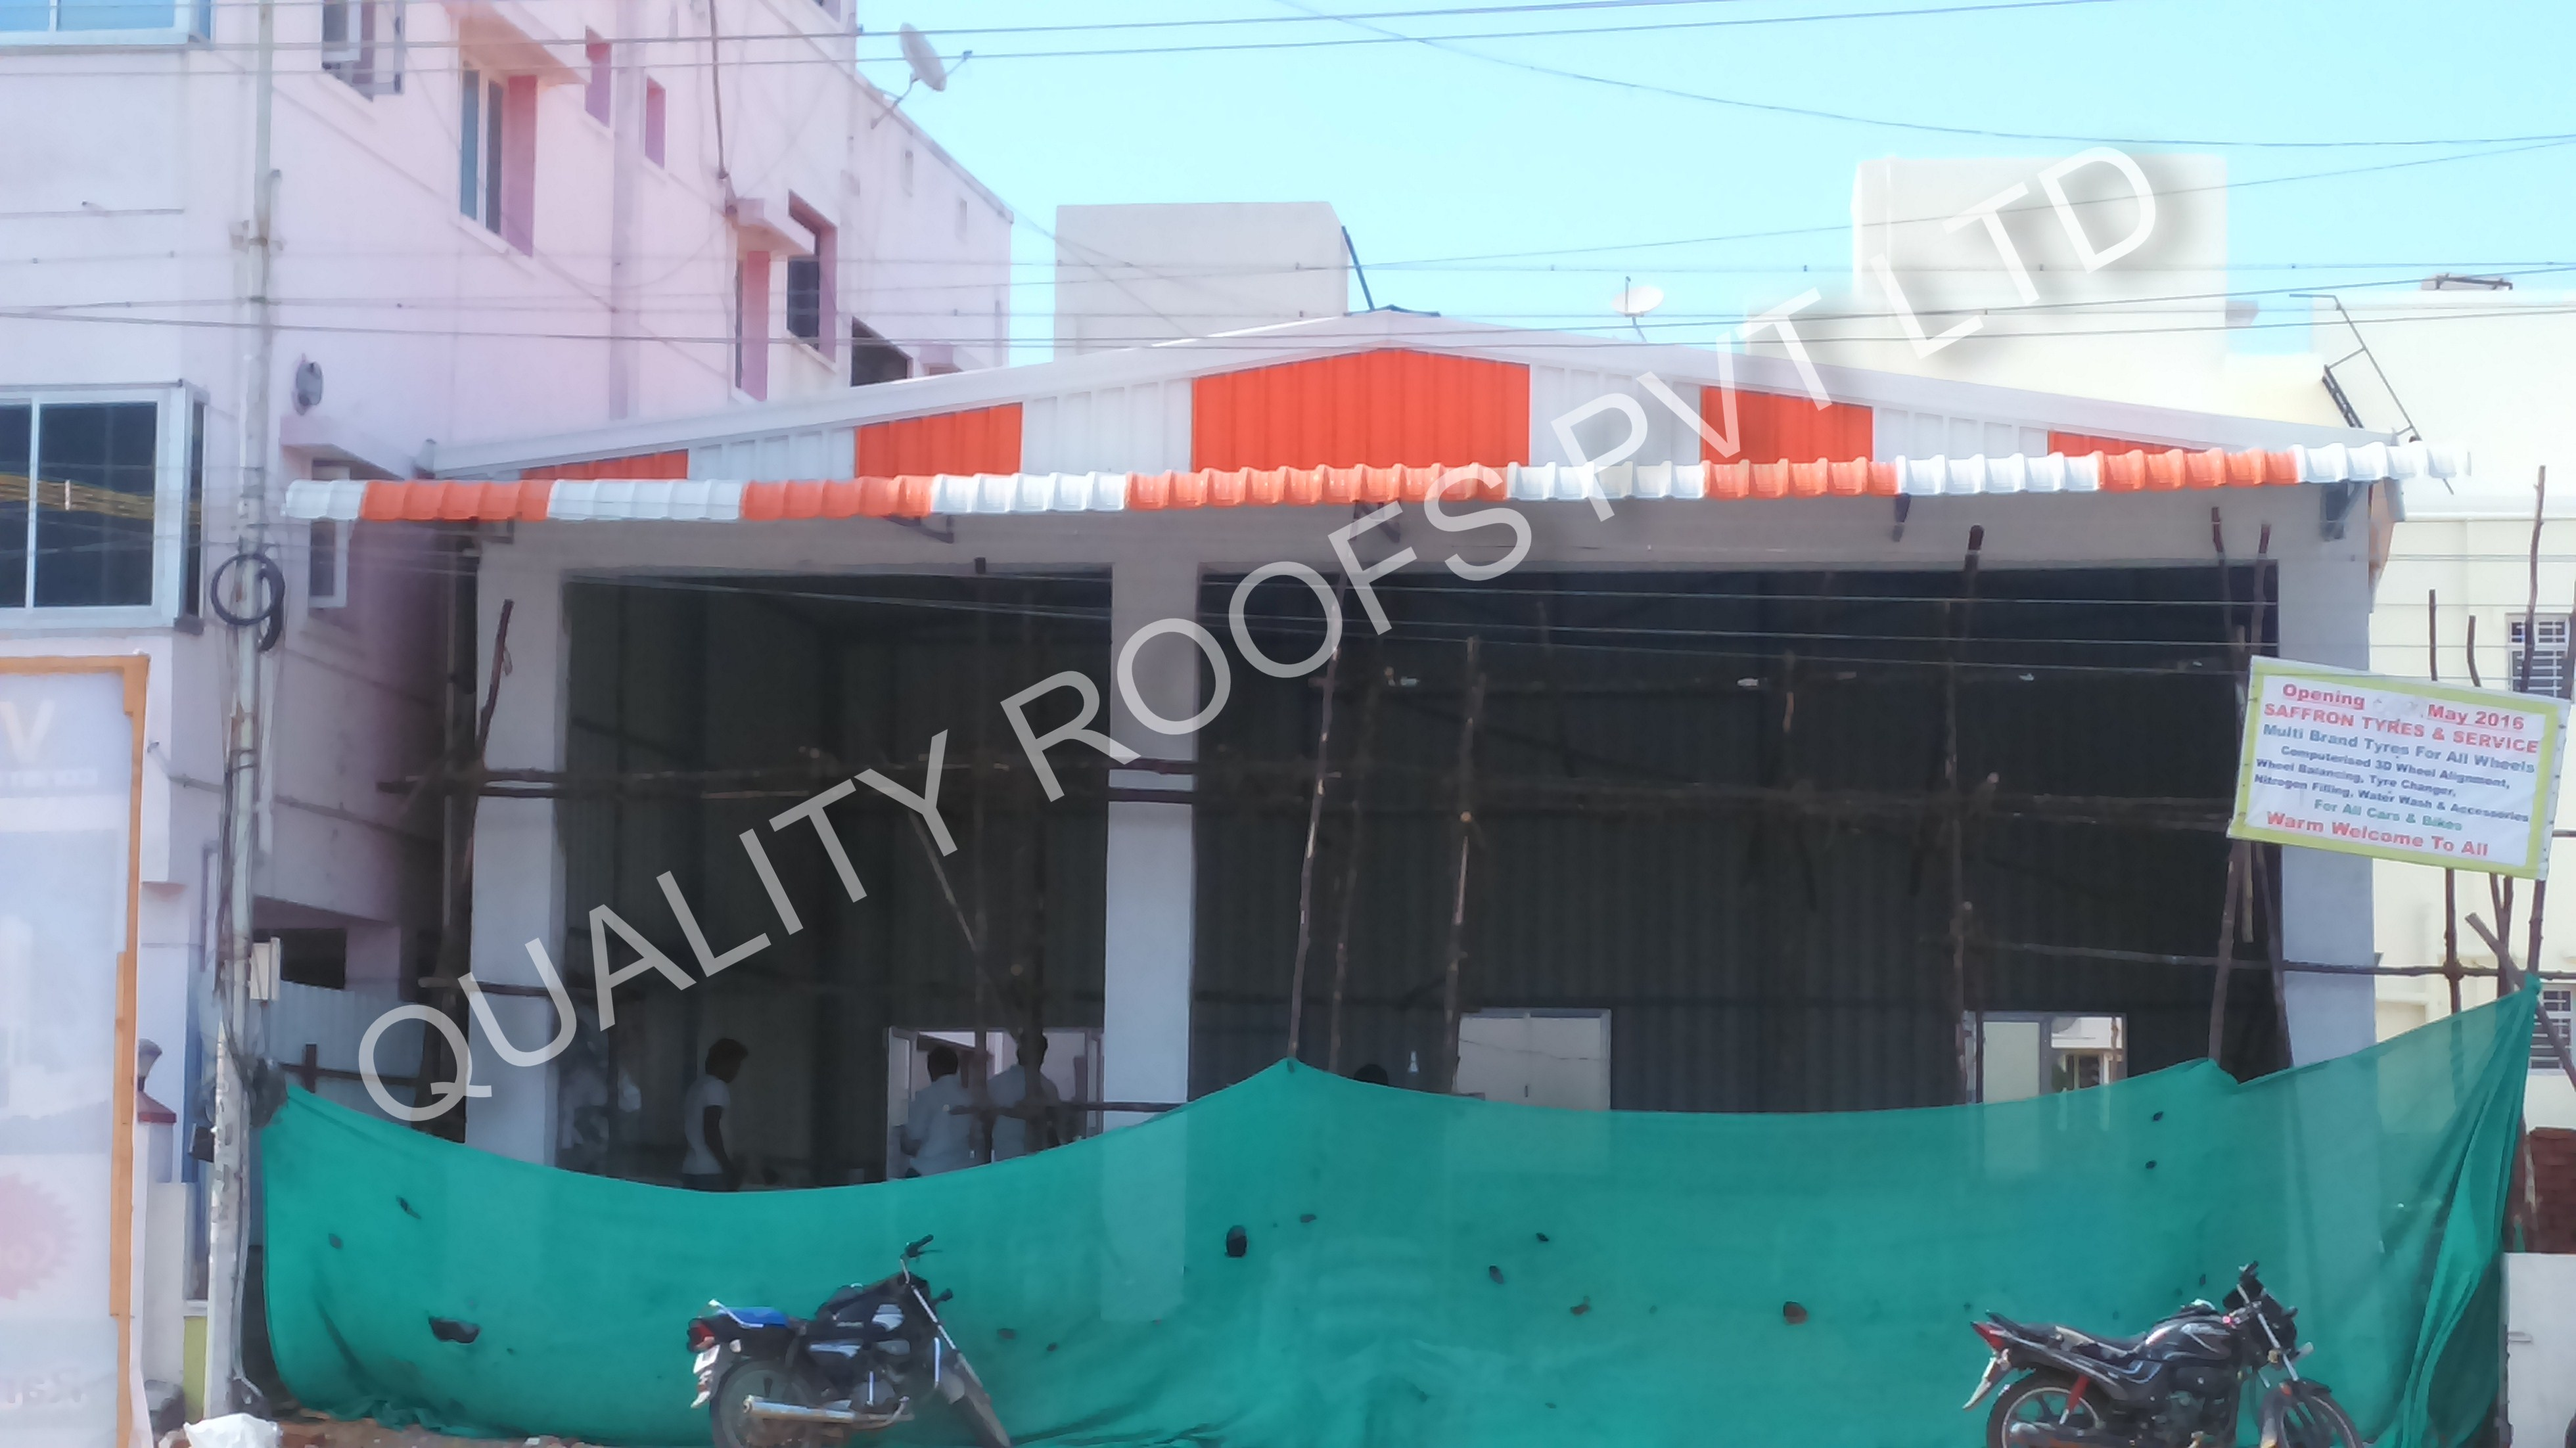 Metal roofing Construction in chennai | Quality Roofs Pvt Ltd | Metal Roofing Construction In Chennai, Metal Roofing Contractors In Chennai, Industrial Roofing Contractors In Chennai, Terrace Roofing Contractors In Chennai, Badminton Roofing Contractors In Chennai - GL56786